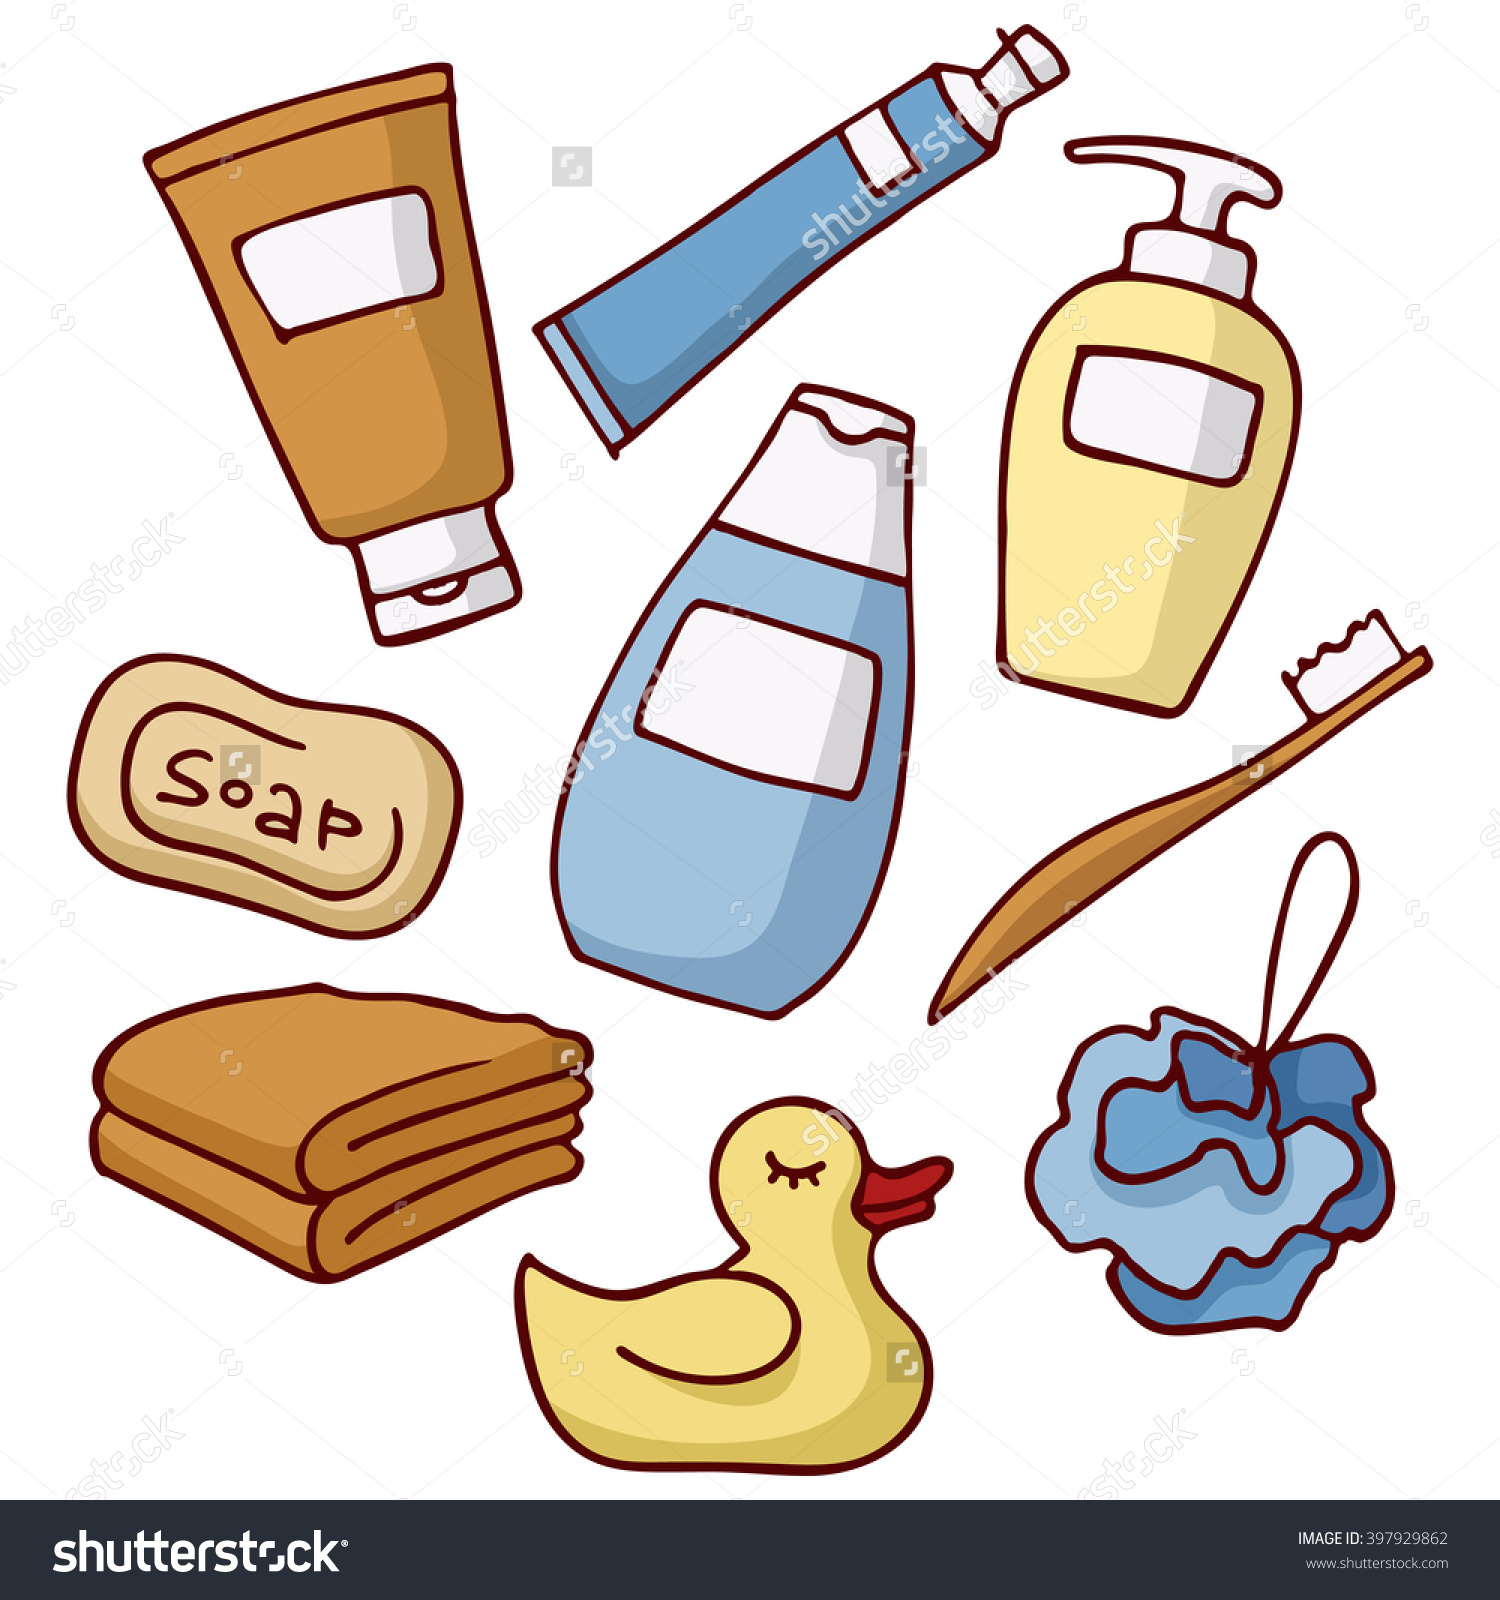 Soap and shampoo clipart 9 » Clipart Station.